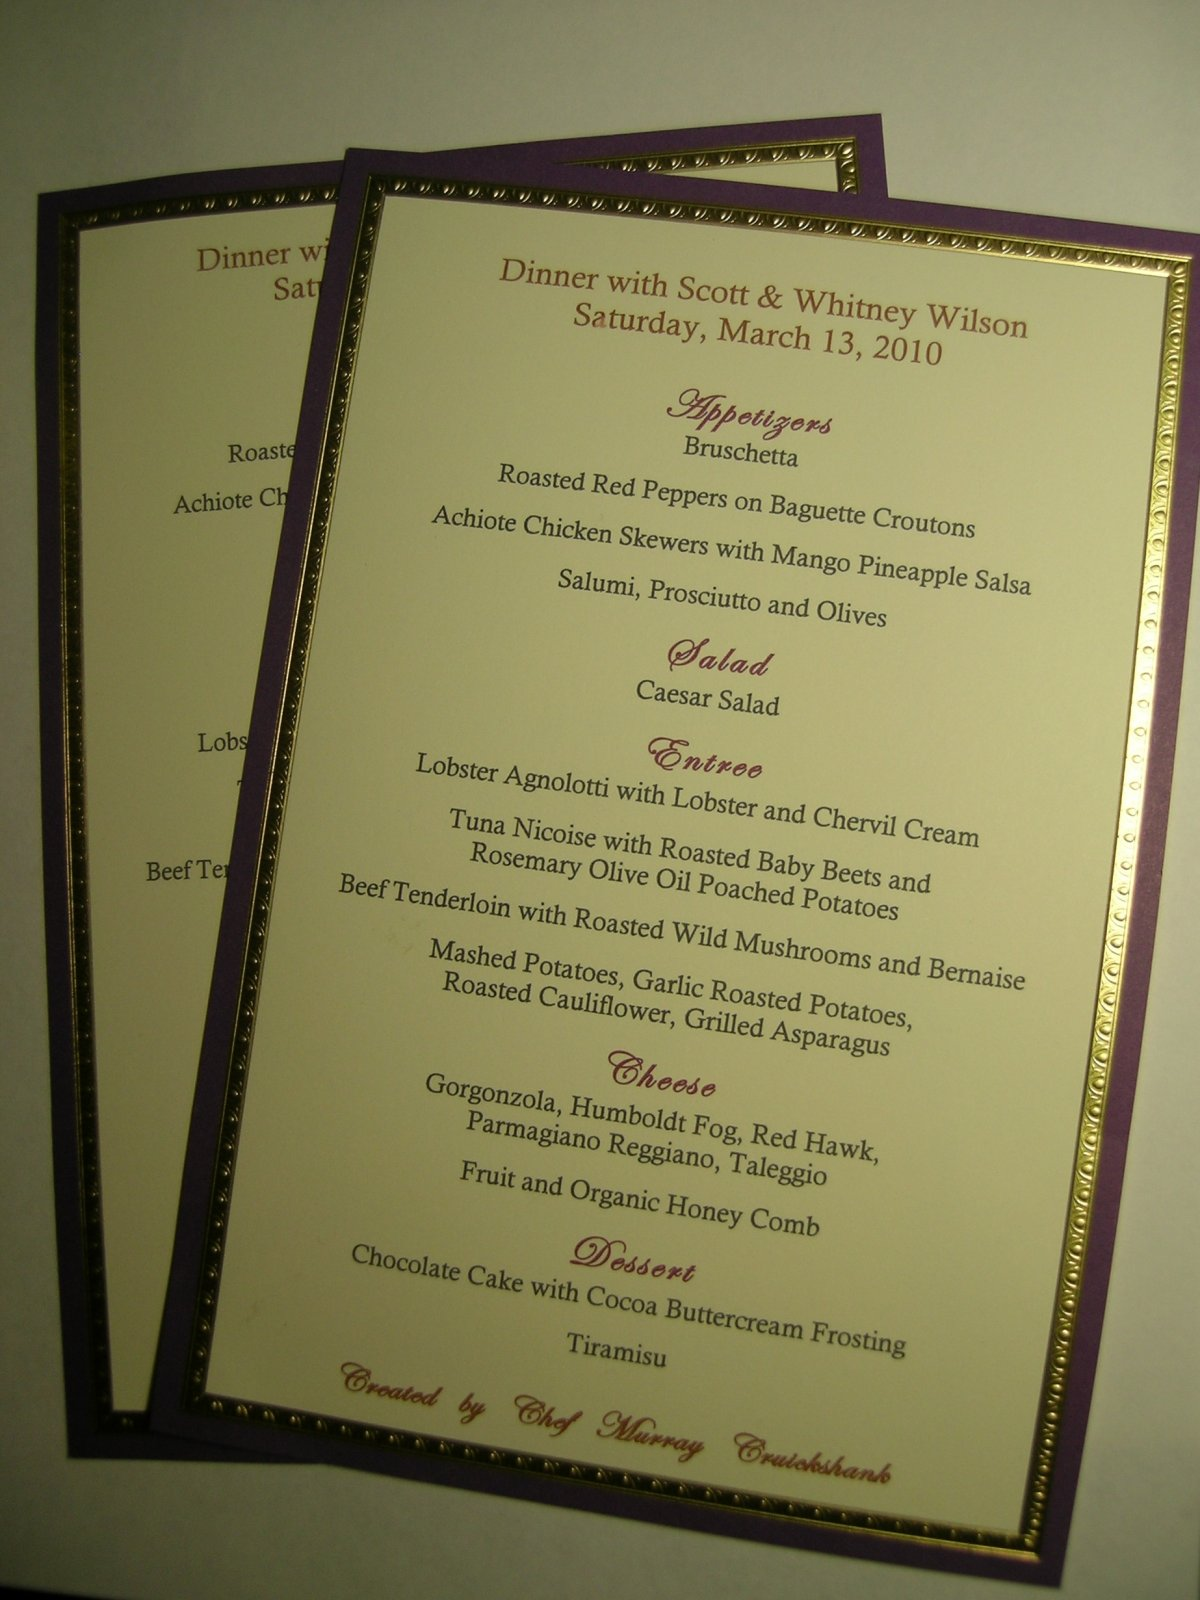 Click image for larger version  Name:The Wilson's Dinner Menu 031310.jpg Views:68 Size:222.6 KB ID:98132